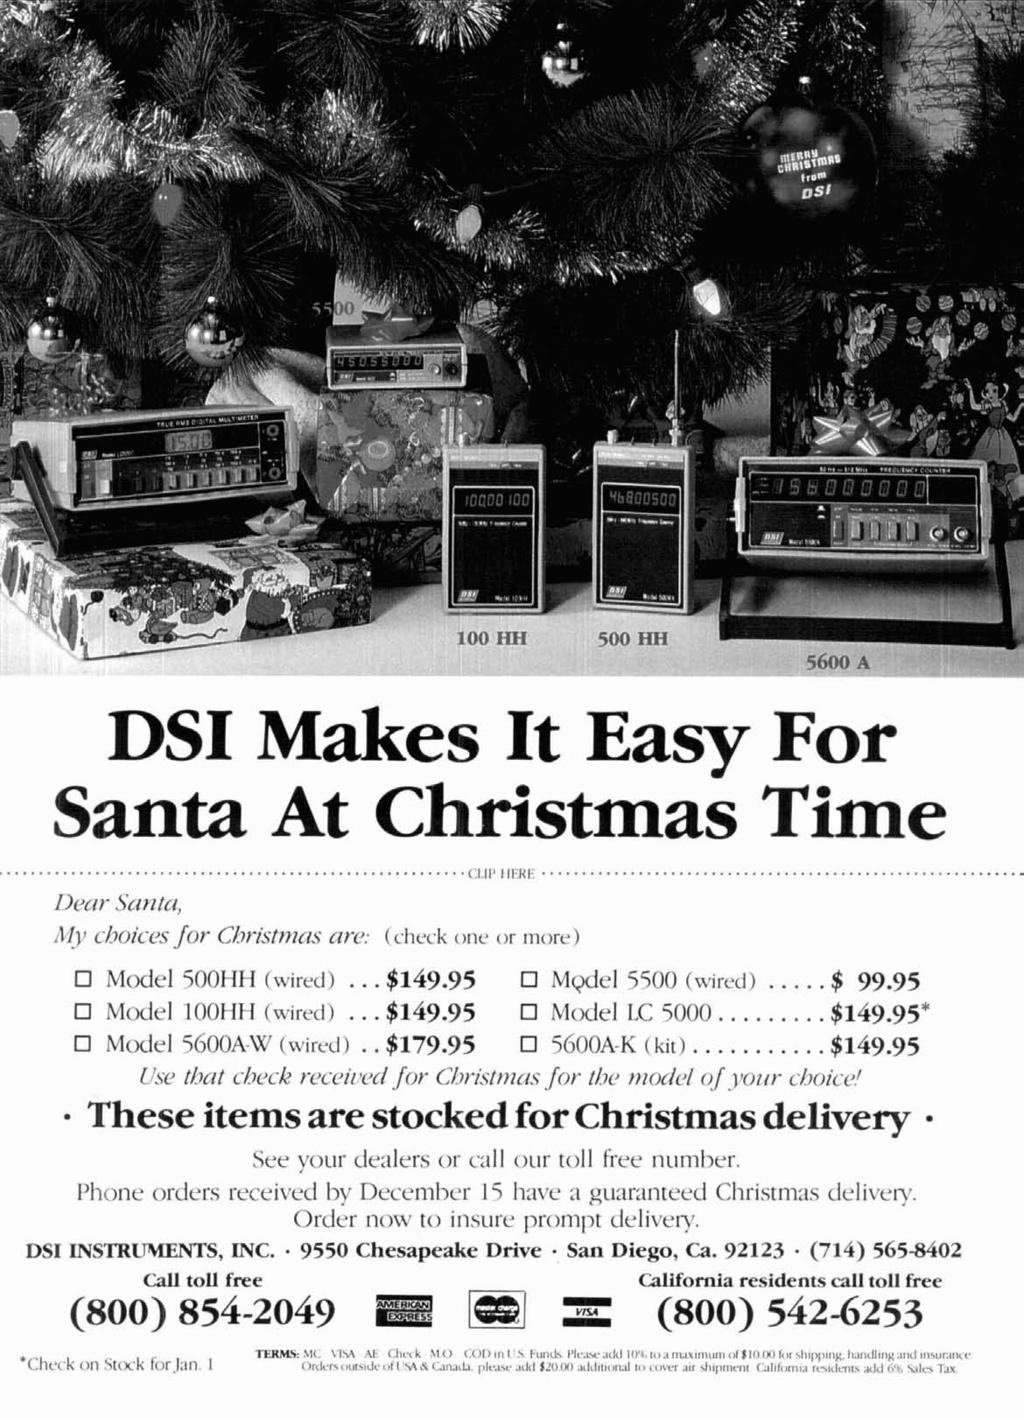 DO ITH DSI Makes It Easy For Santa At Christmas Time... (;1.,1',1,<1<1.'... Decir Santa, 1191 c-hoic--c.s for Christnzc~.s arcj: (check one or more) El Model 5OOHH (wired)... $149.